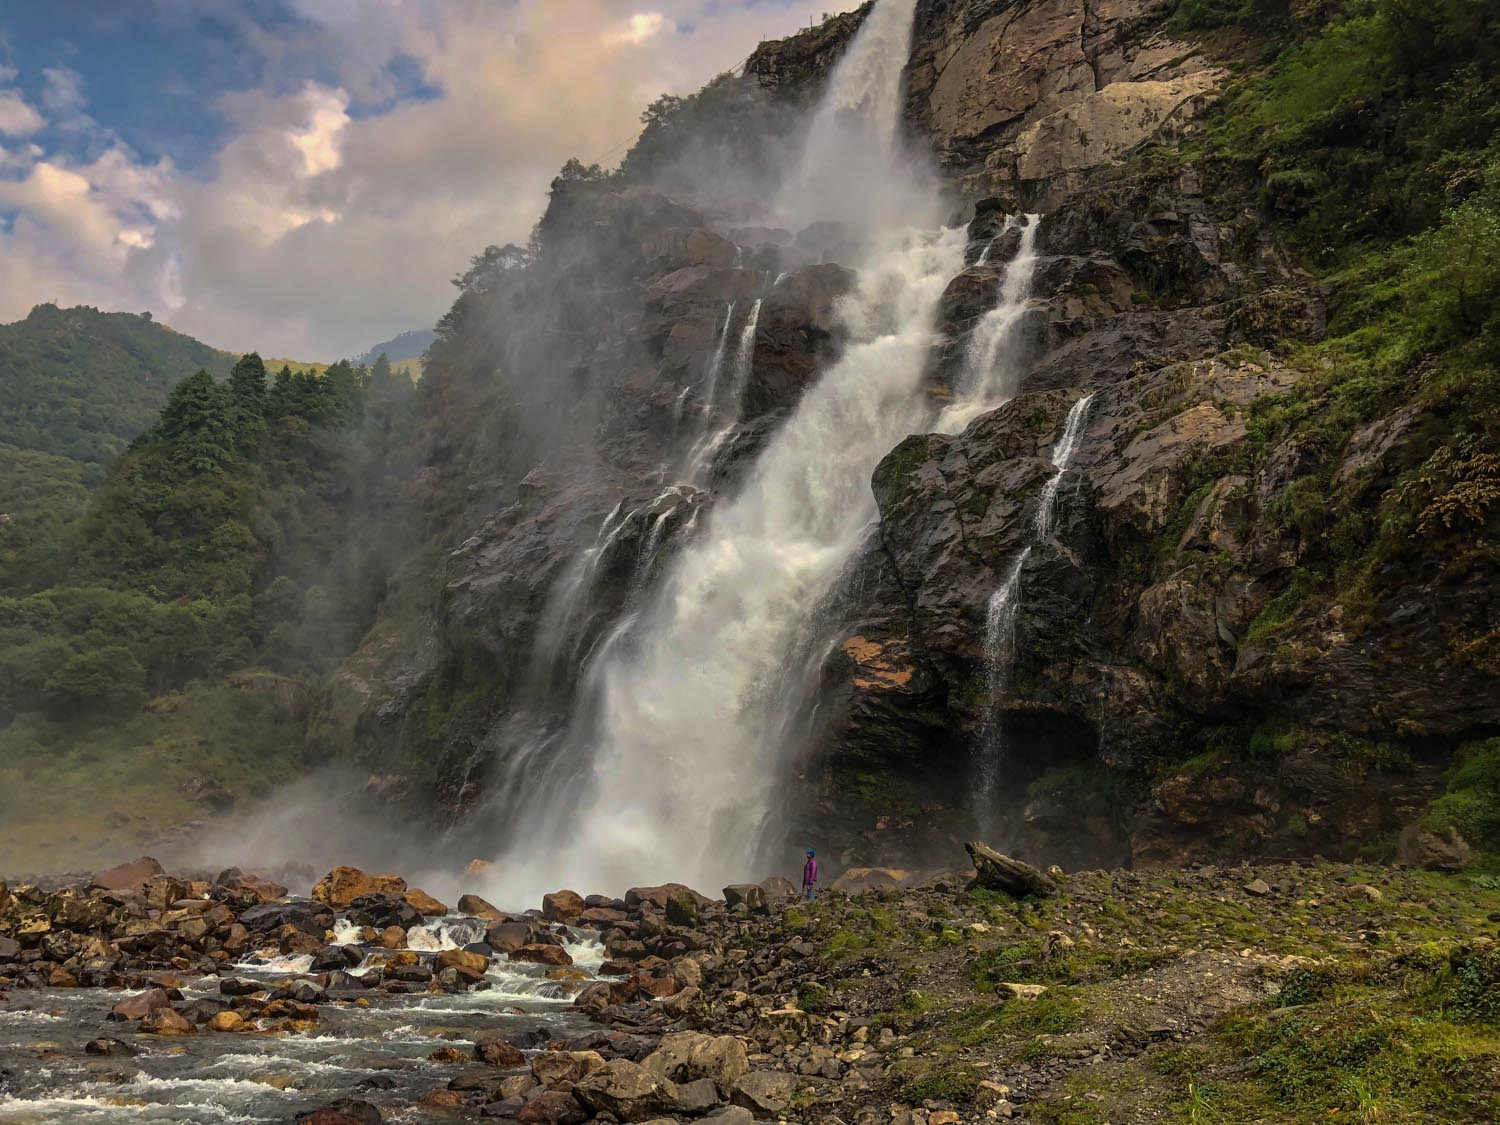 Nuranang Falls, one of the most spectacular waterfalls in the country